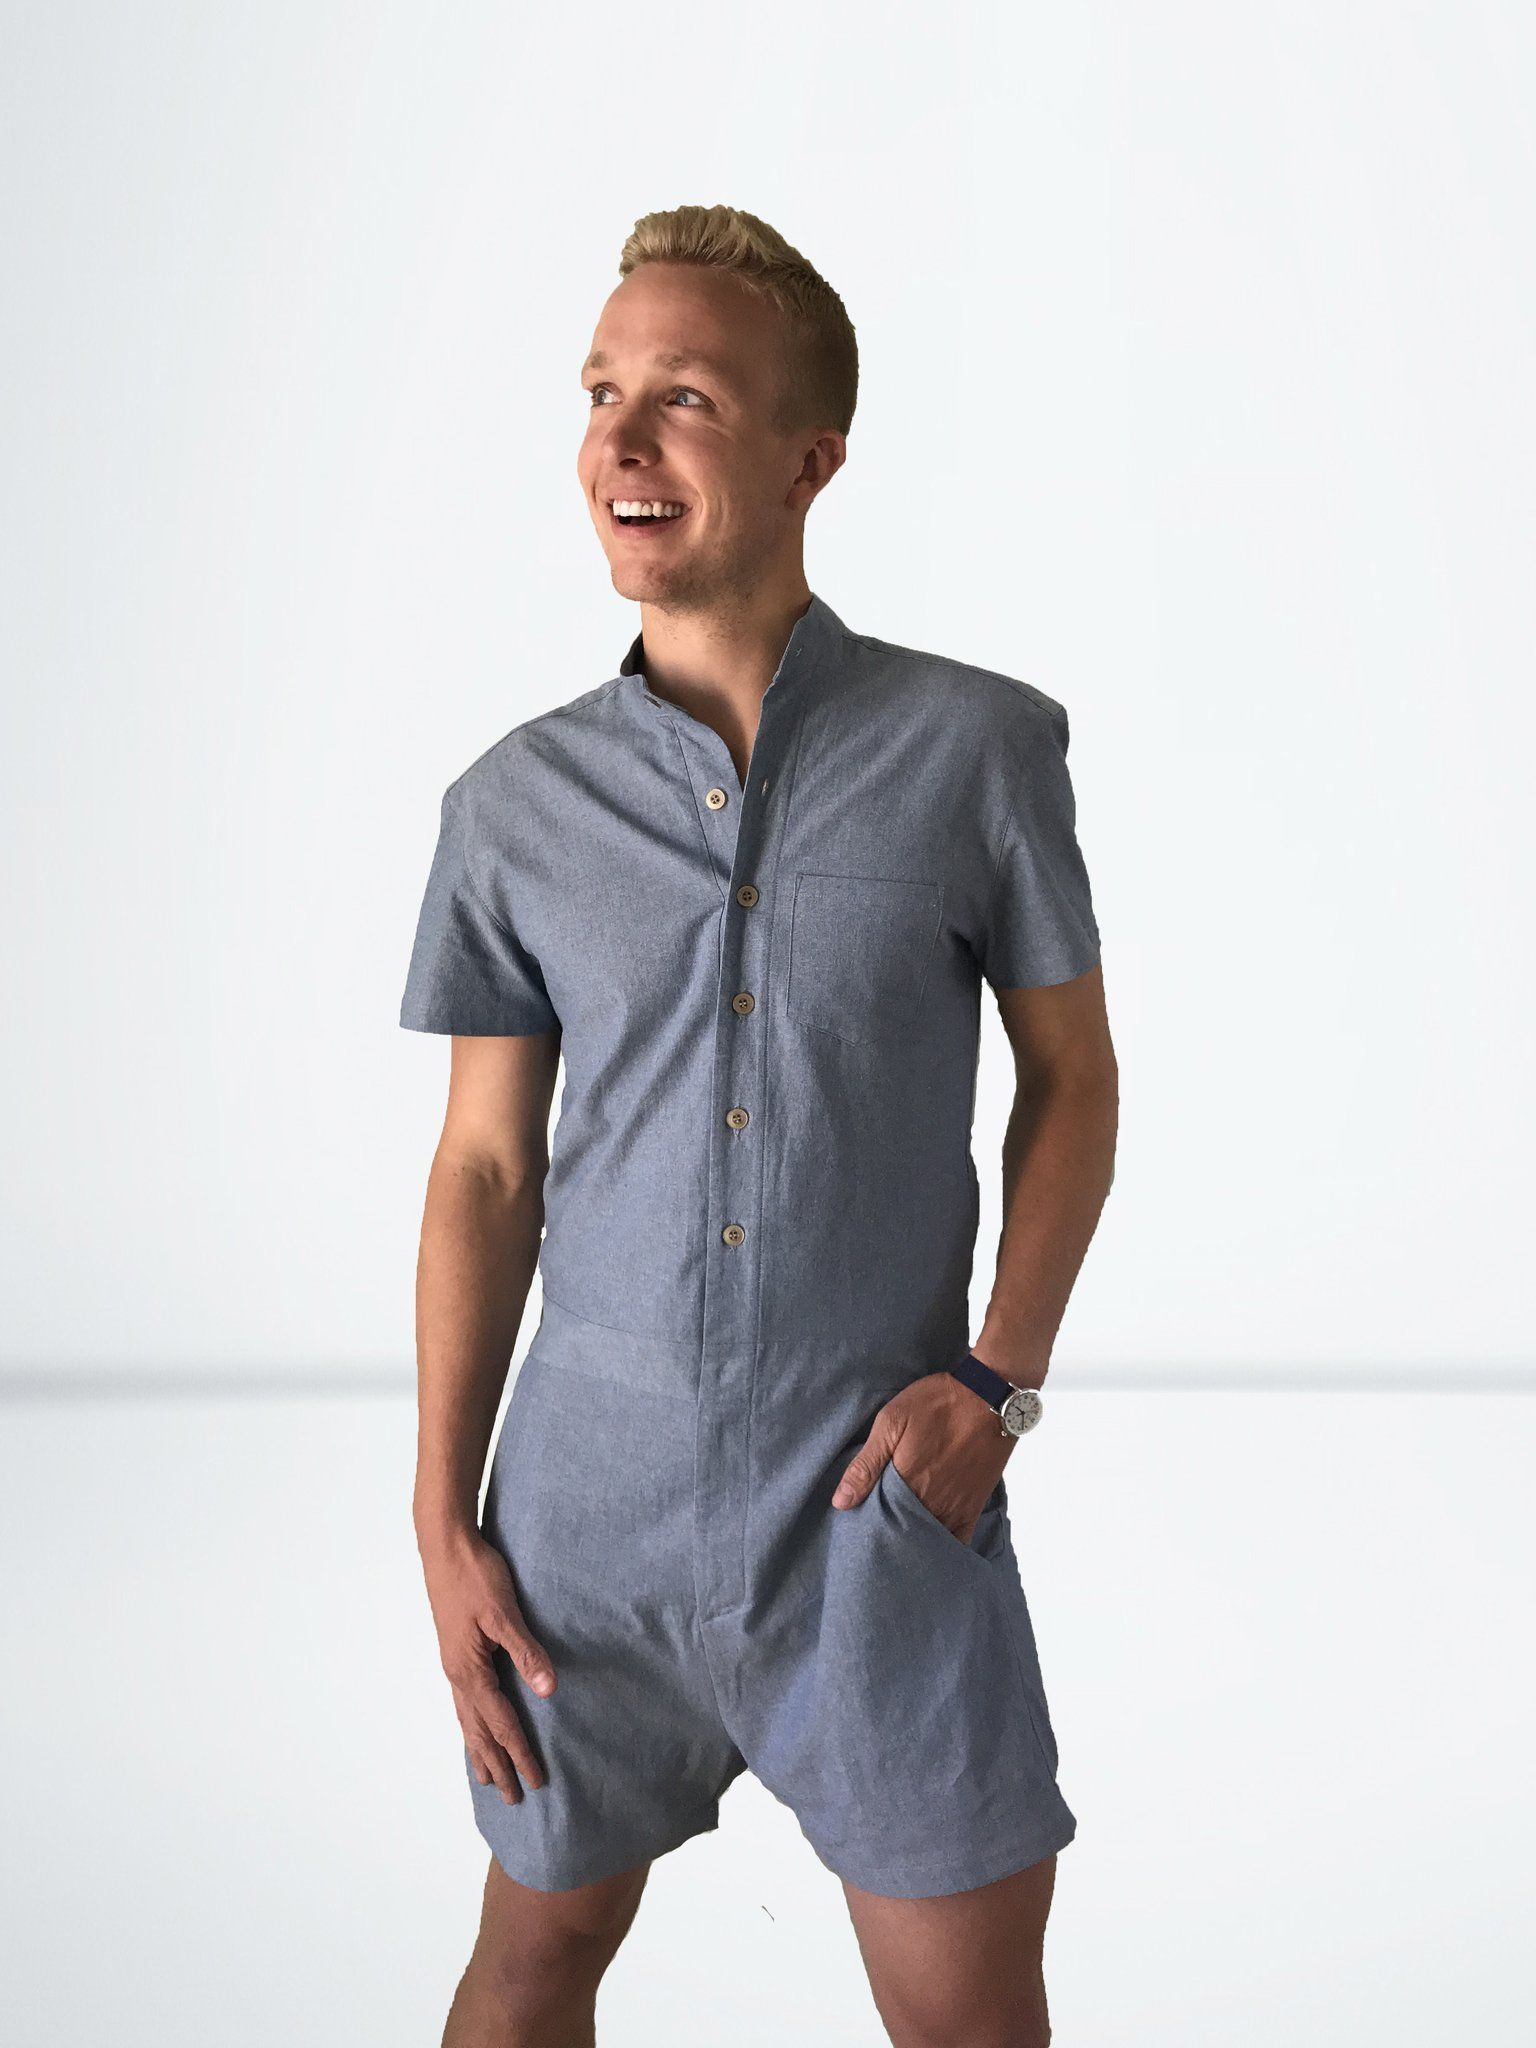 ecb0bd92daf Turn heads and break hearts when you take this RompHim for a spin. Is it a  romper specially designed for men  Sure